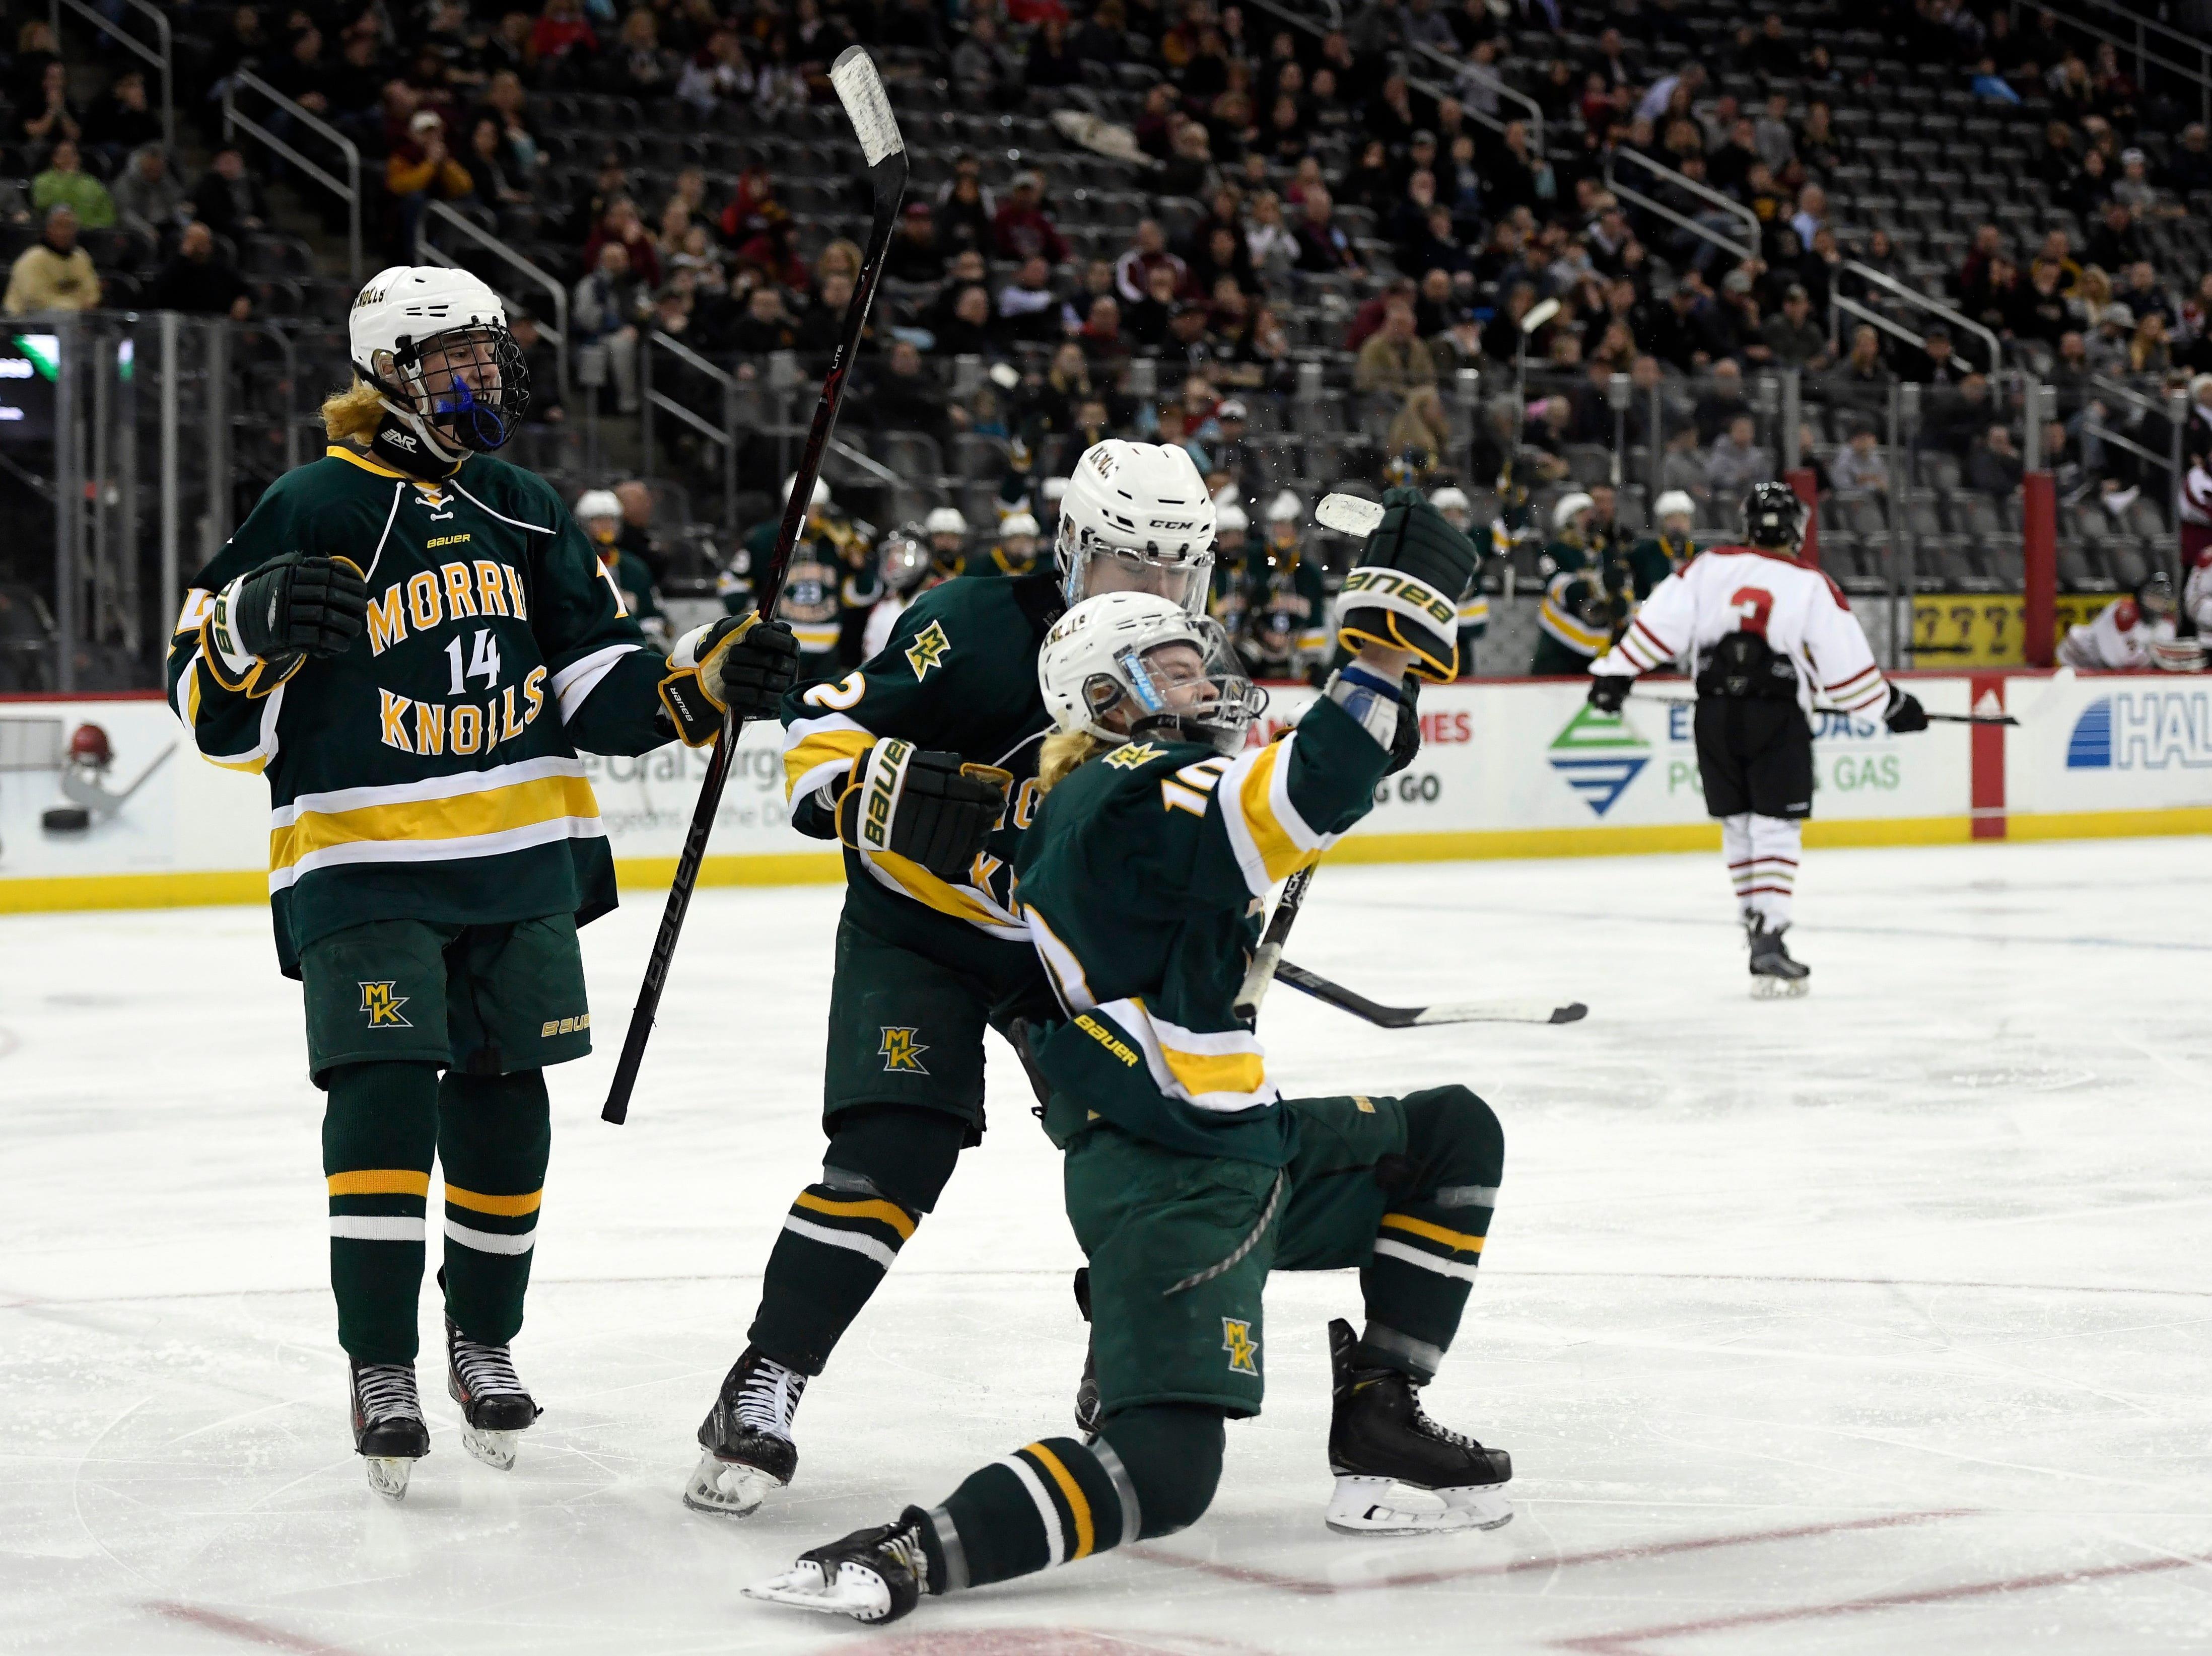 Morris Knolls/Hills' Sean Murray (10) celebrates his goal in the second period against Hillsborough in the Public A ice hockey final at the Prudential Center on Monday, March 4, 2019, in Newark.